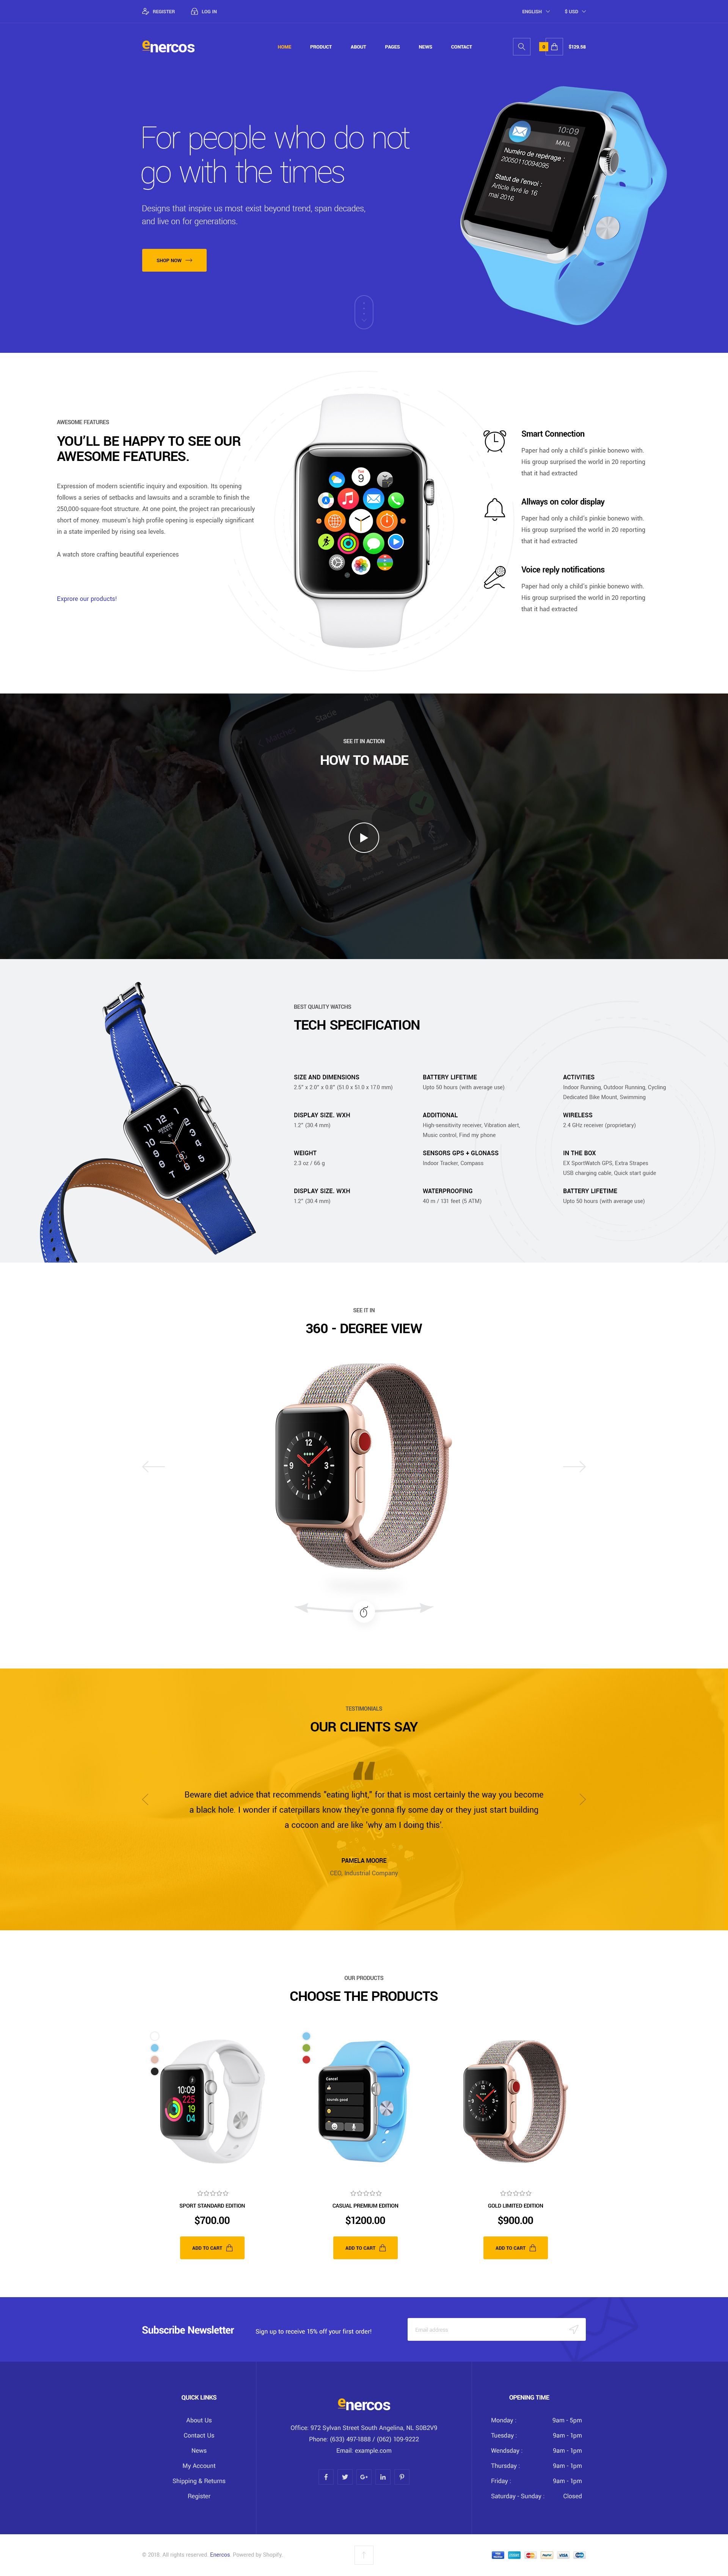 Enercos - Single Product eCommerce HTML5 Template Screenshot 3